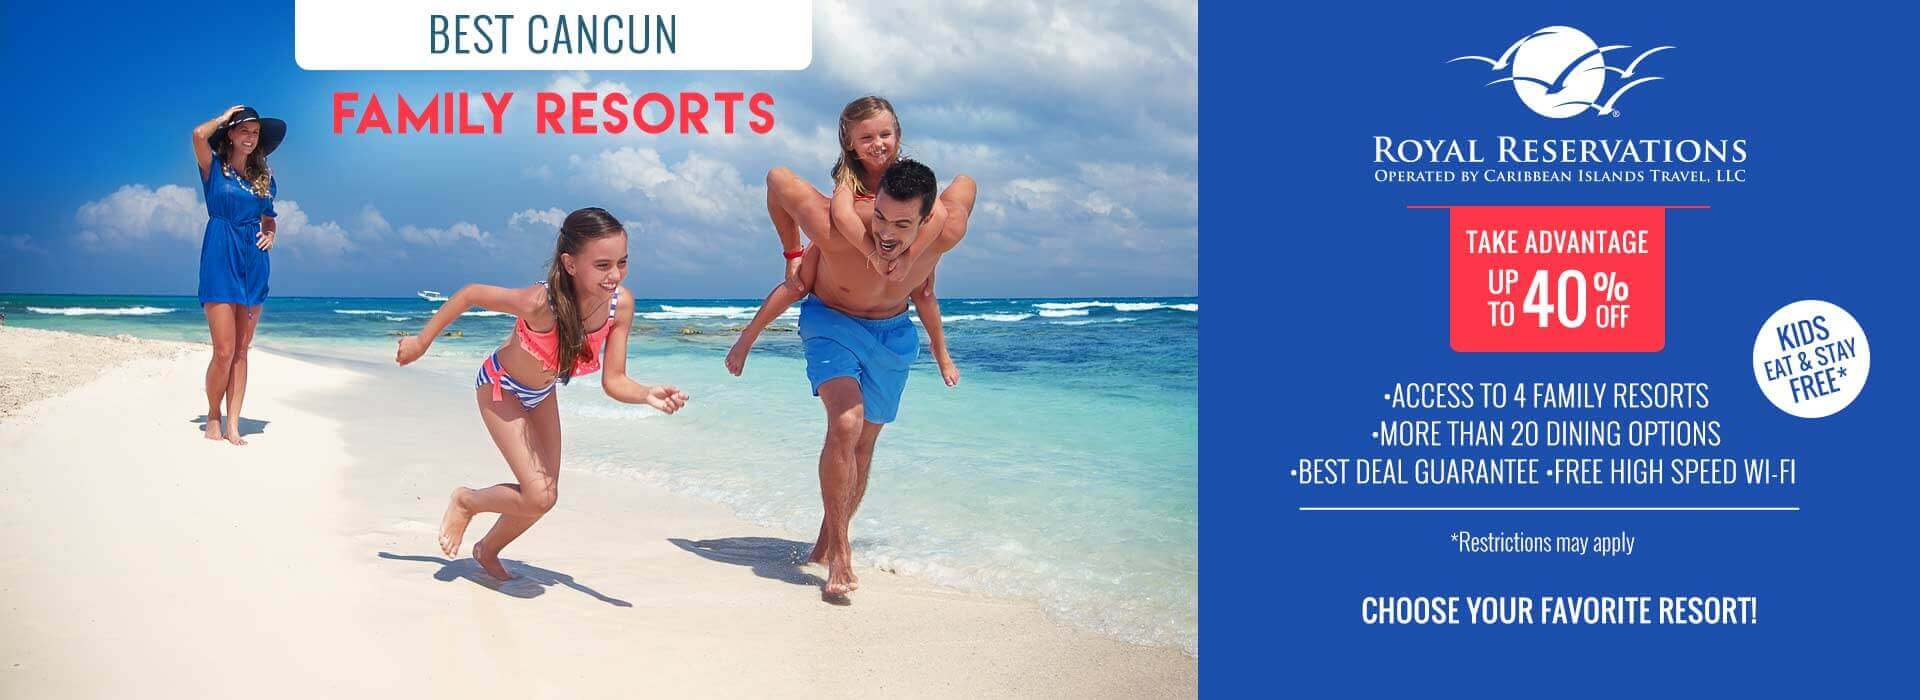 Family Resorts in Cancun